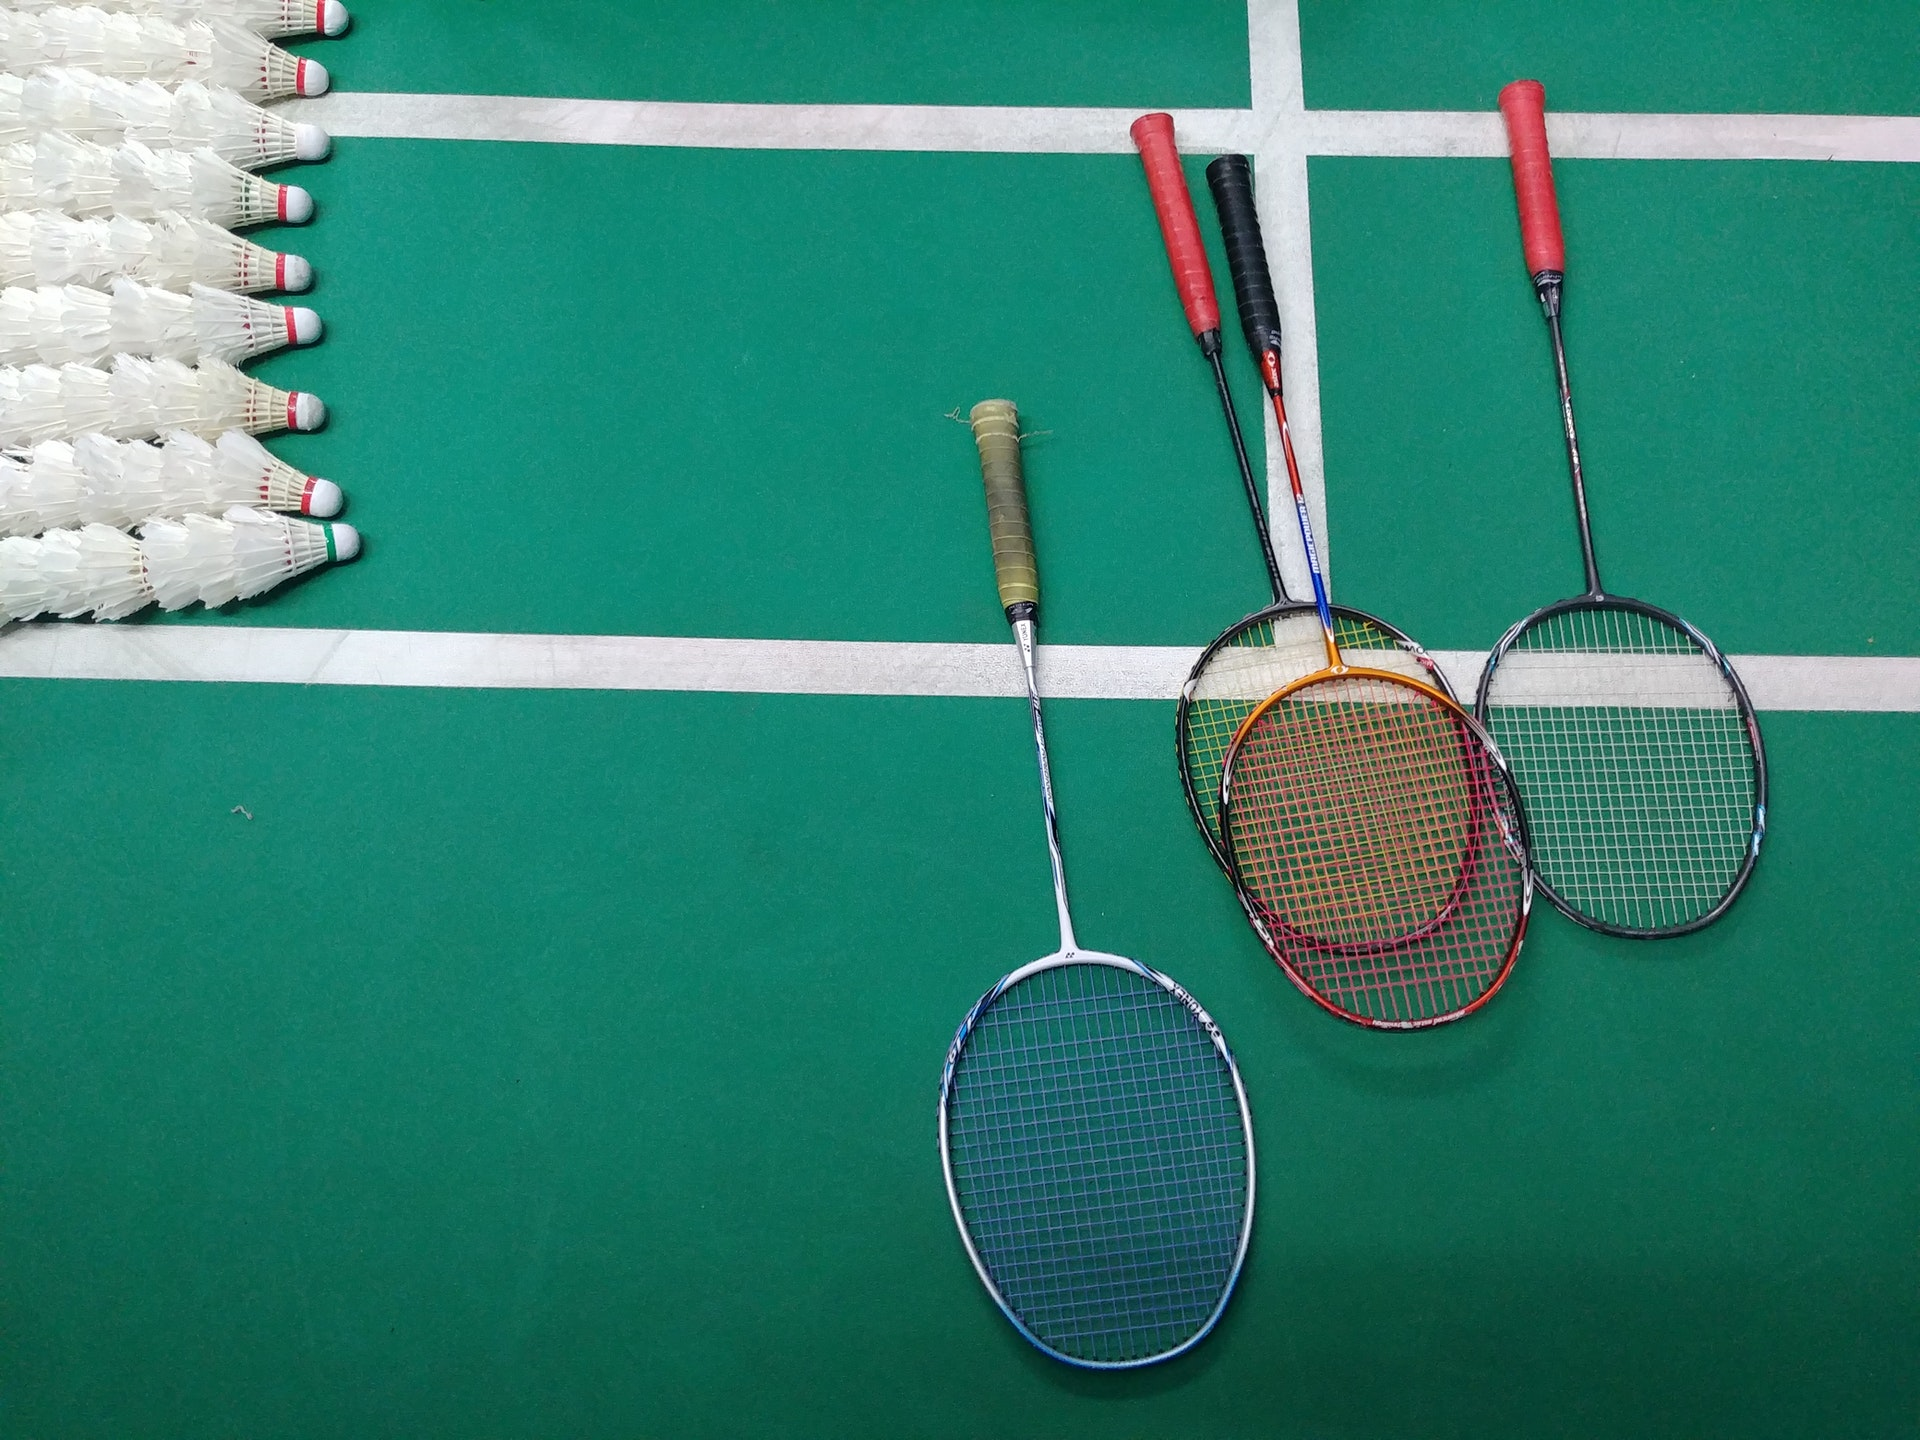 green-and-white-court-with-badminton-rackets-3660204